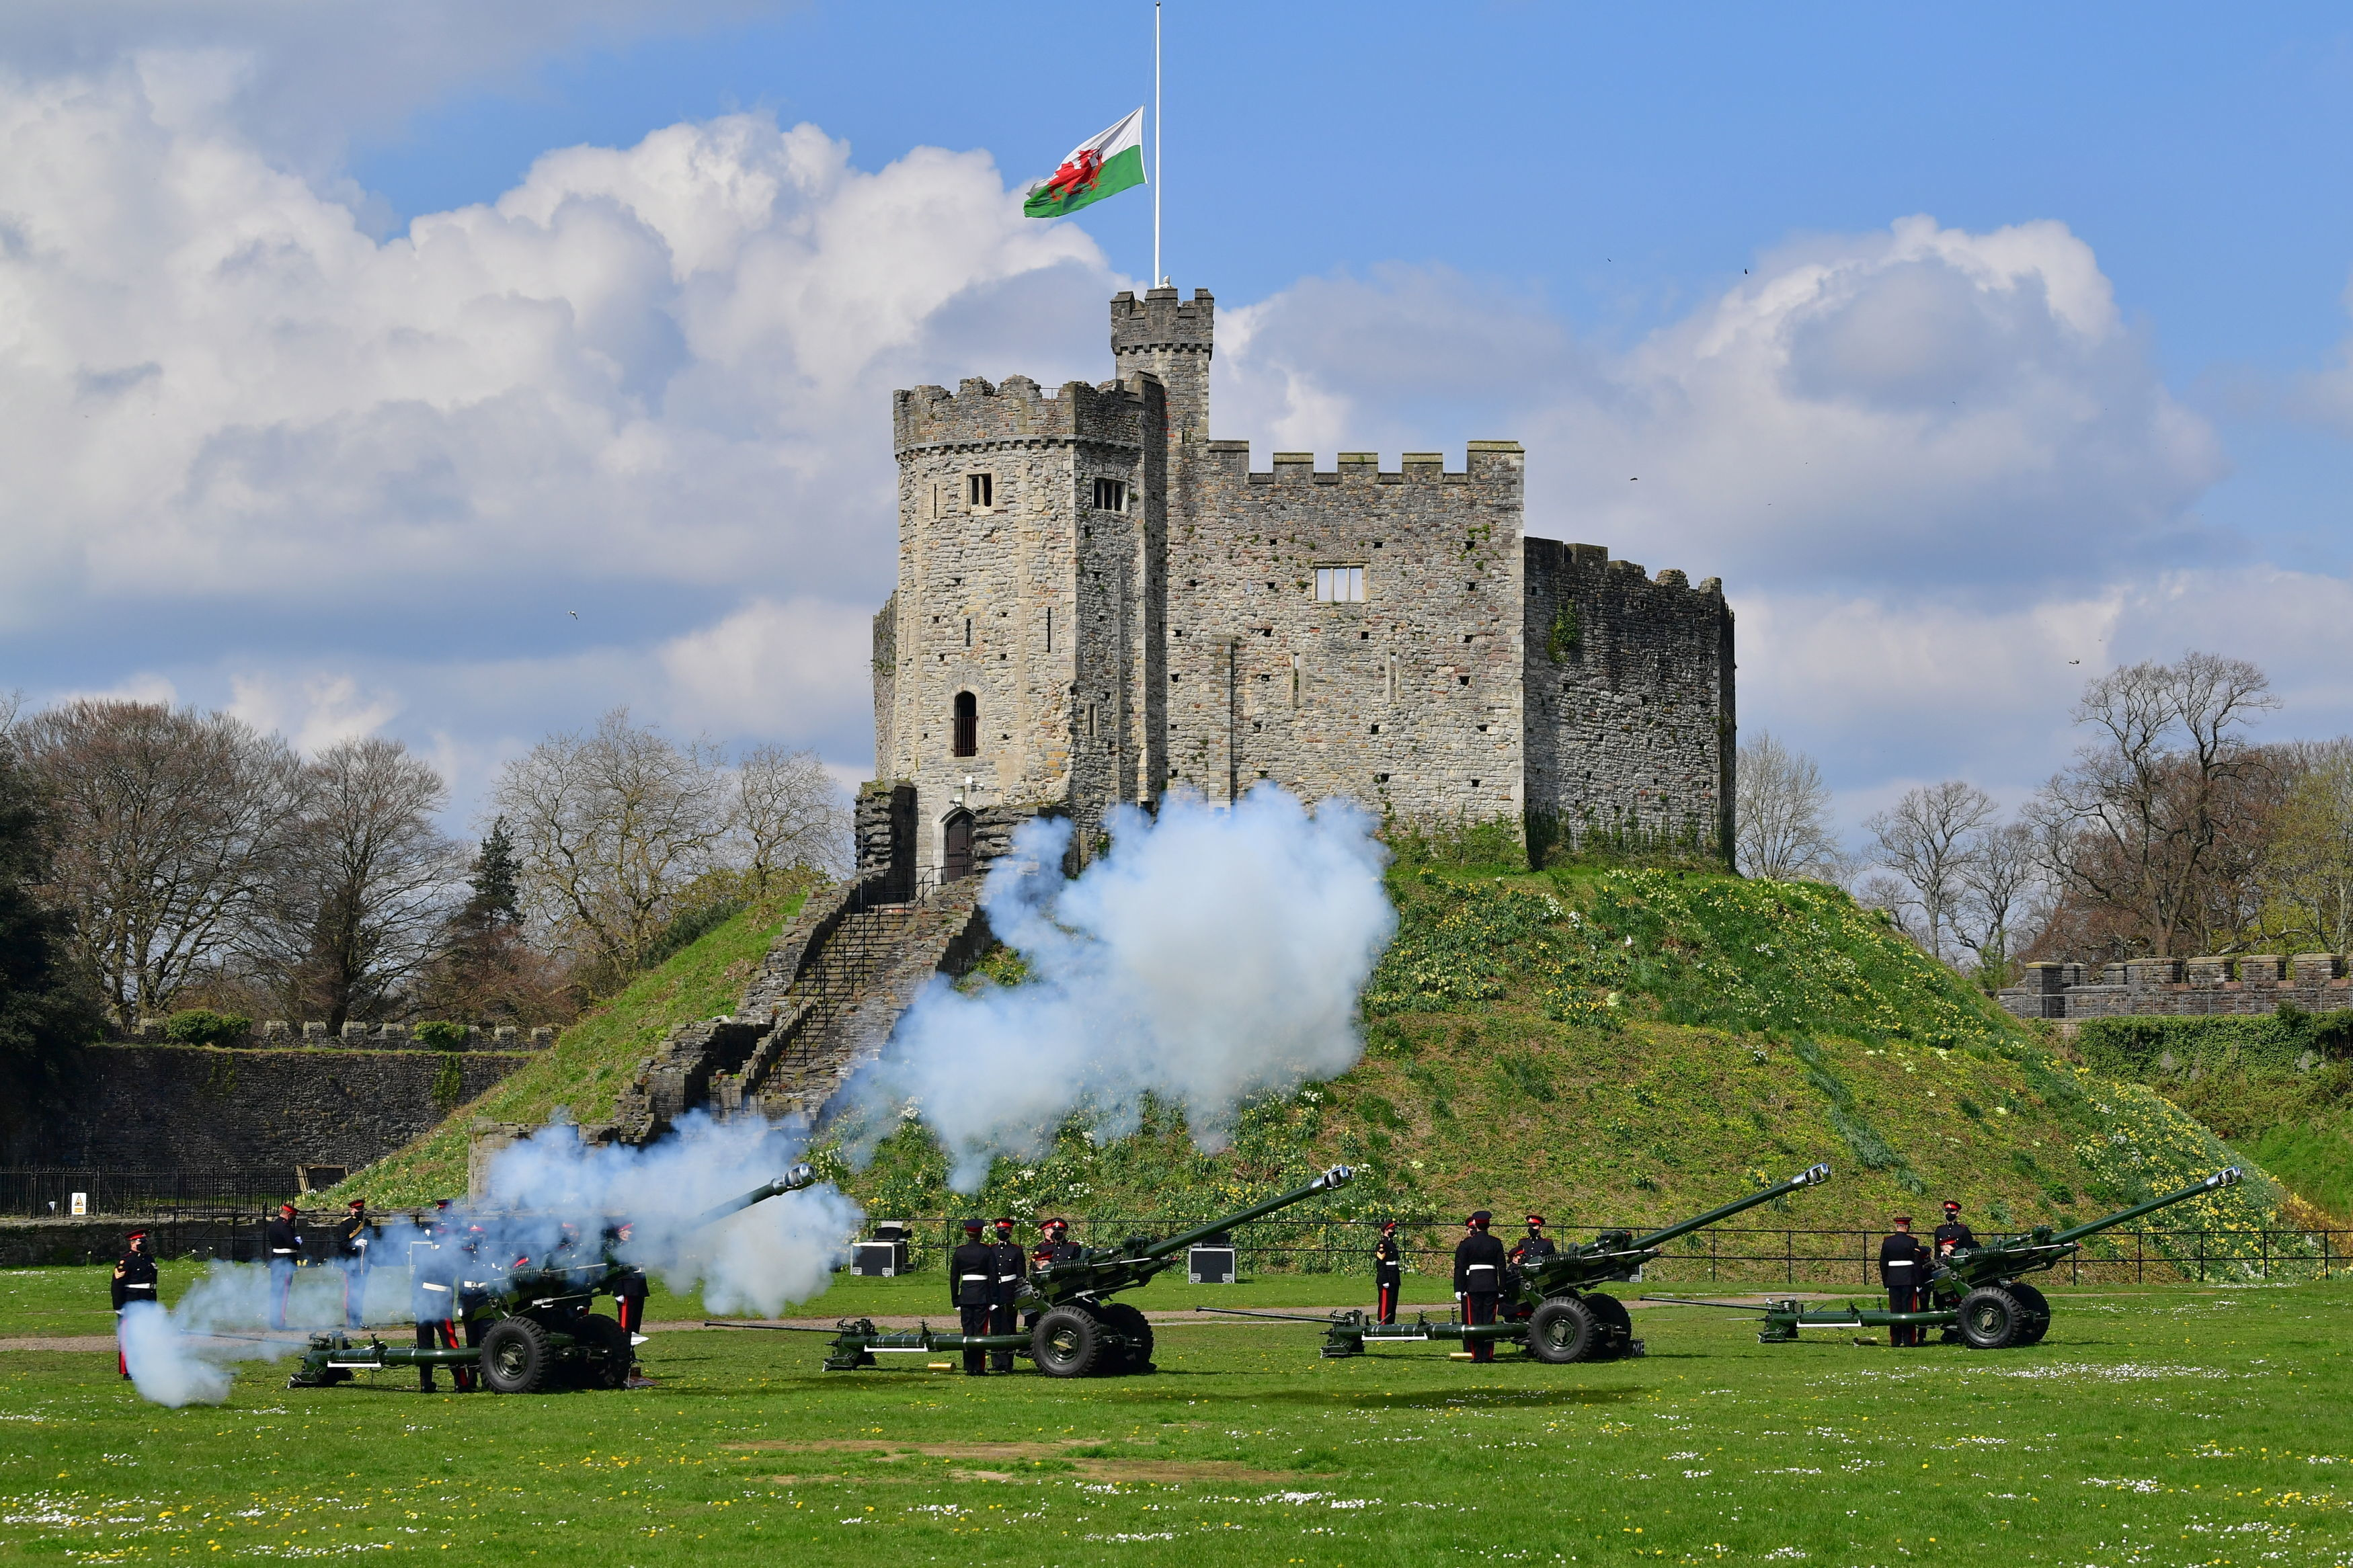 Members of the 104th Regiment Royal Artillery fire a 41-round gun salute in the grounds of Cardiff Castle, to mark the death of Prince Philip, in Cardiff on April 10, 2021.